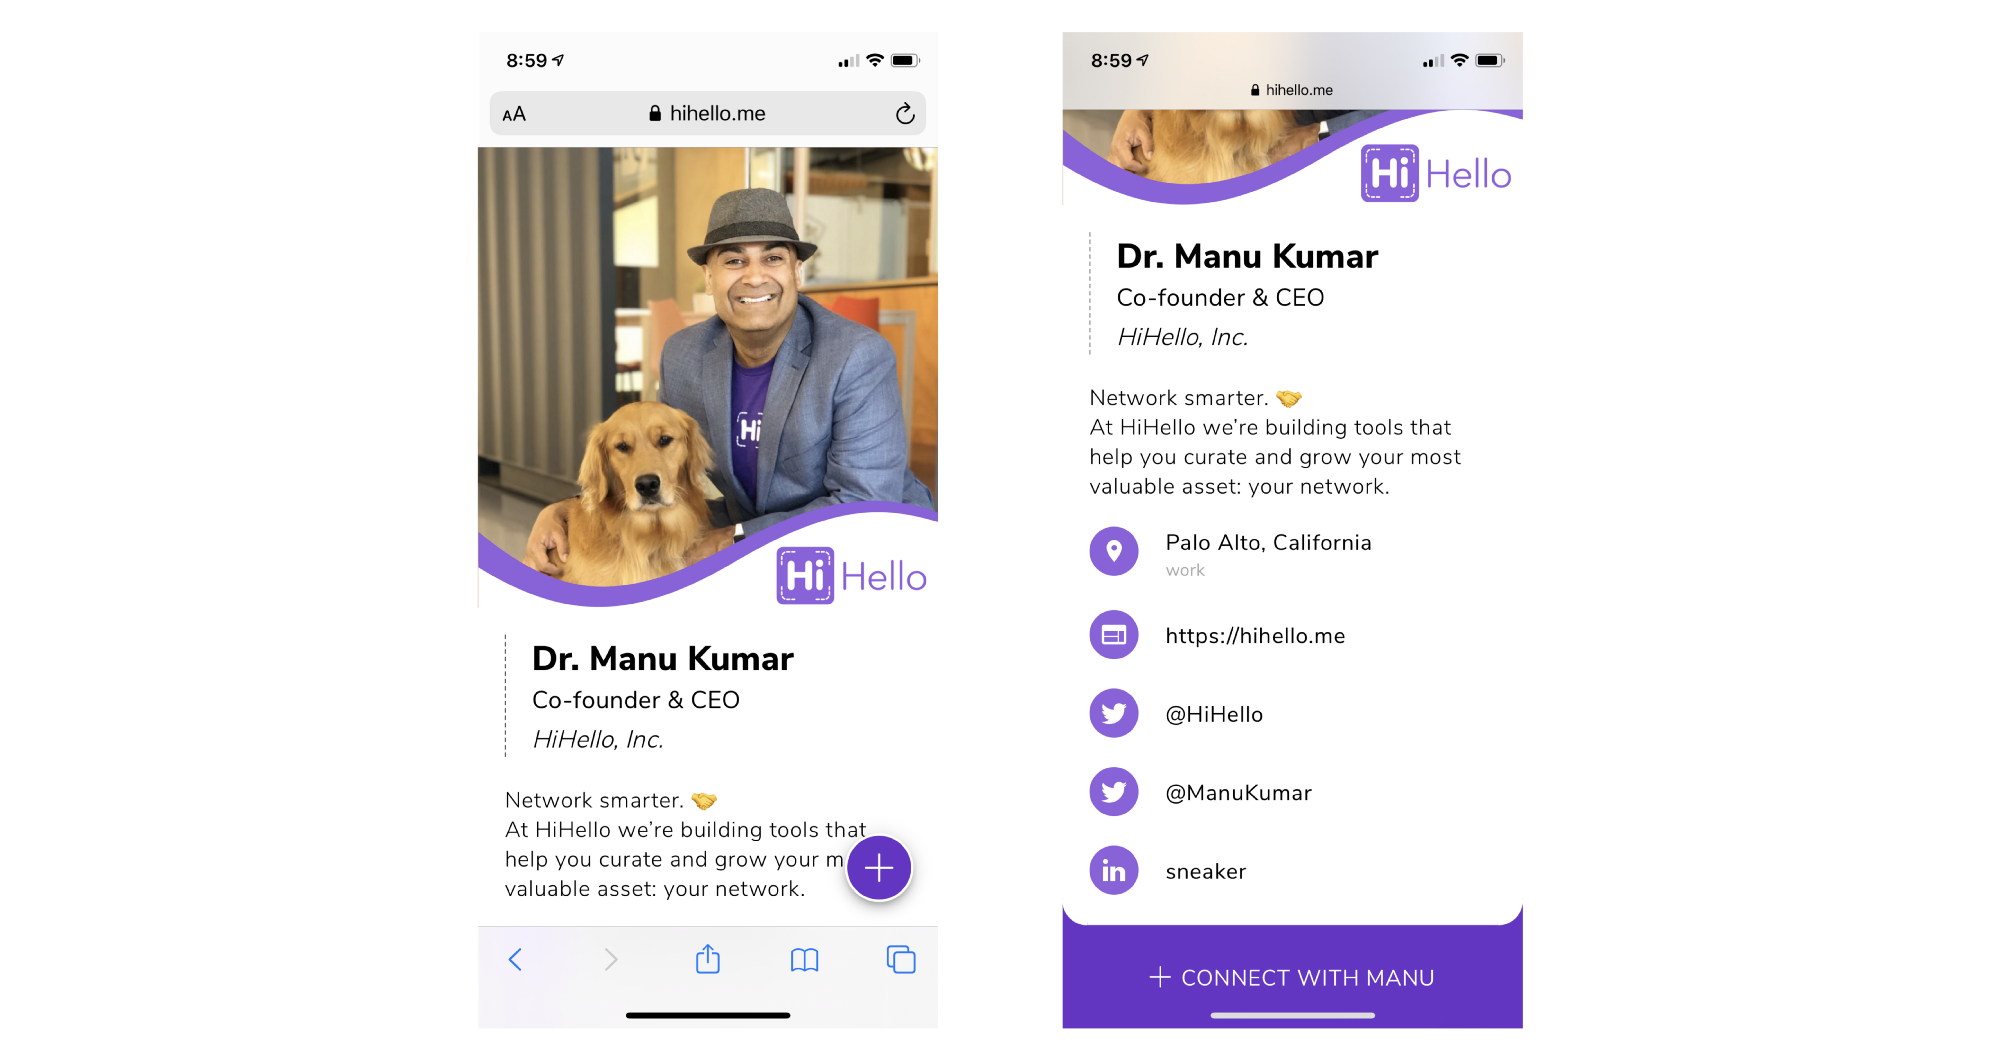 Dr. Manu Kumar's HiHello digital business card